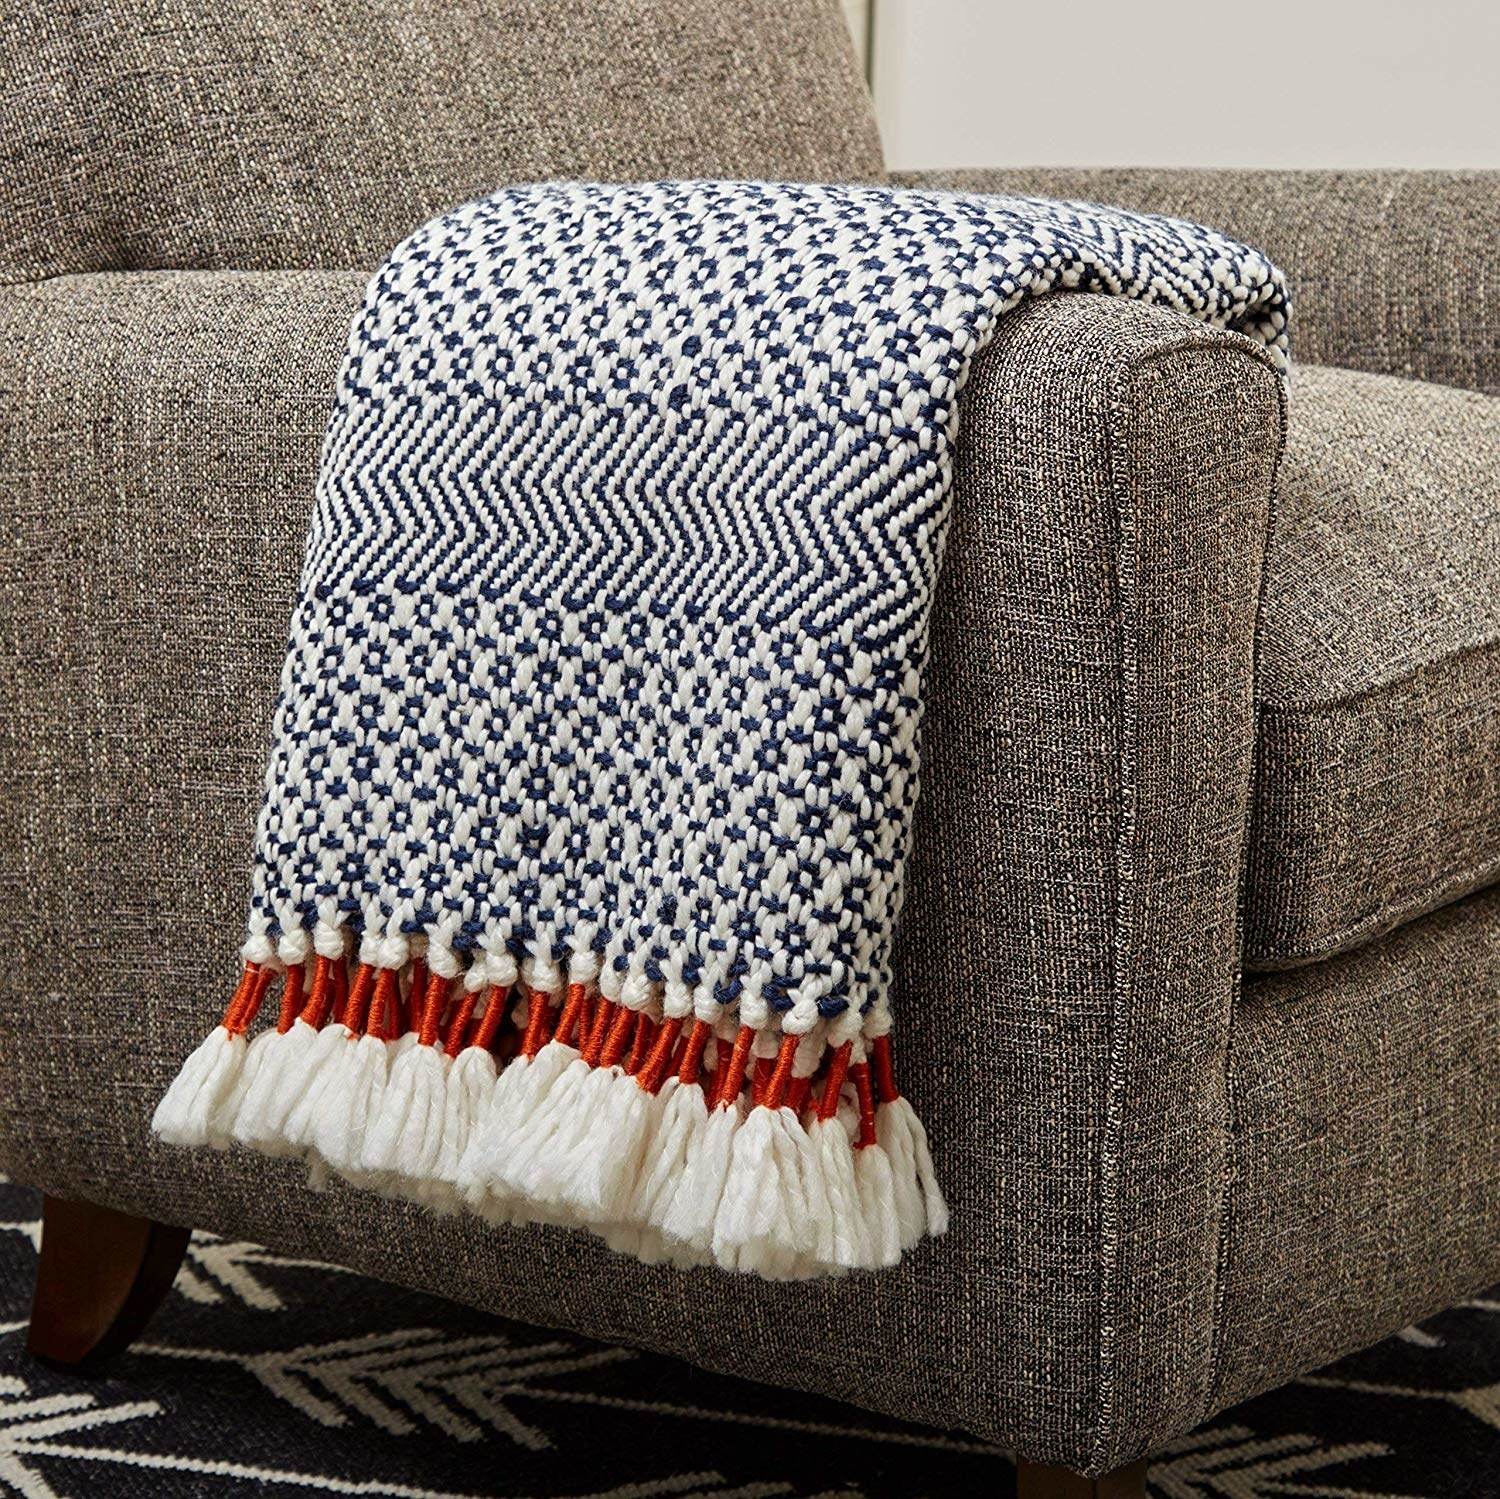 Knitted throw blanket with decorative fringe on the ends